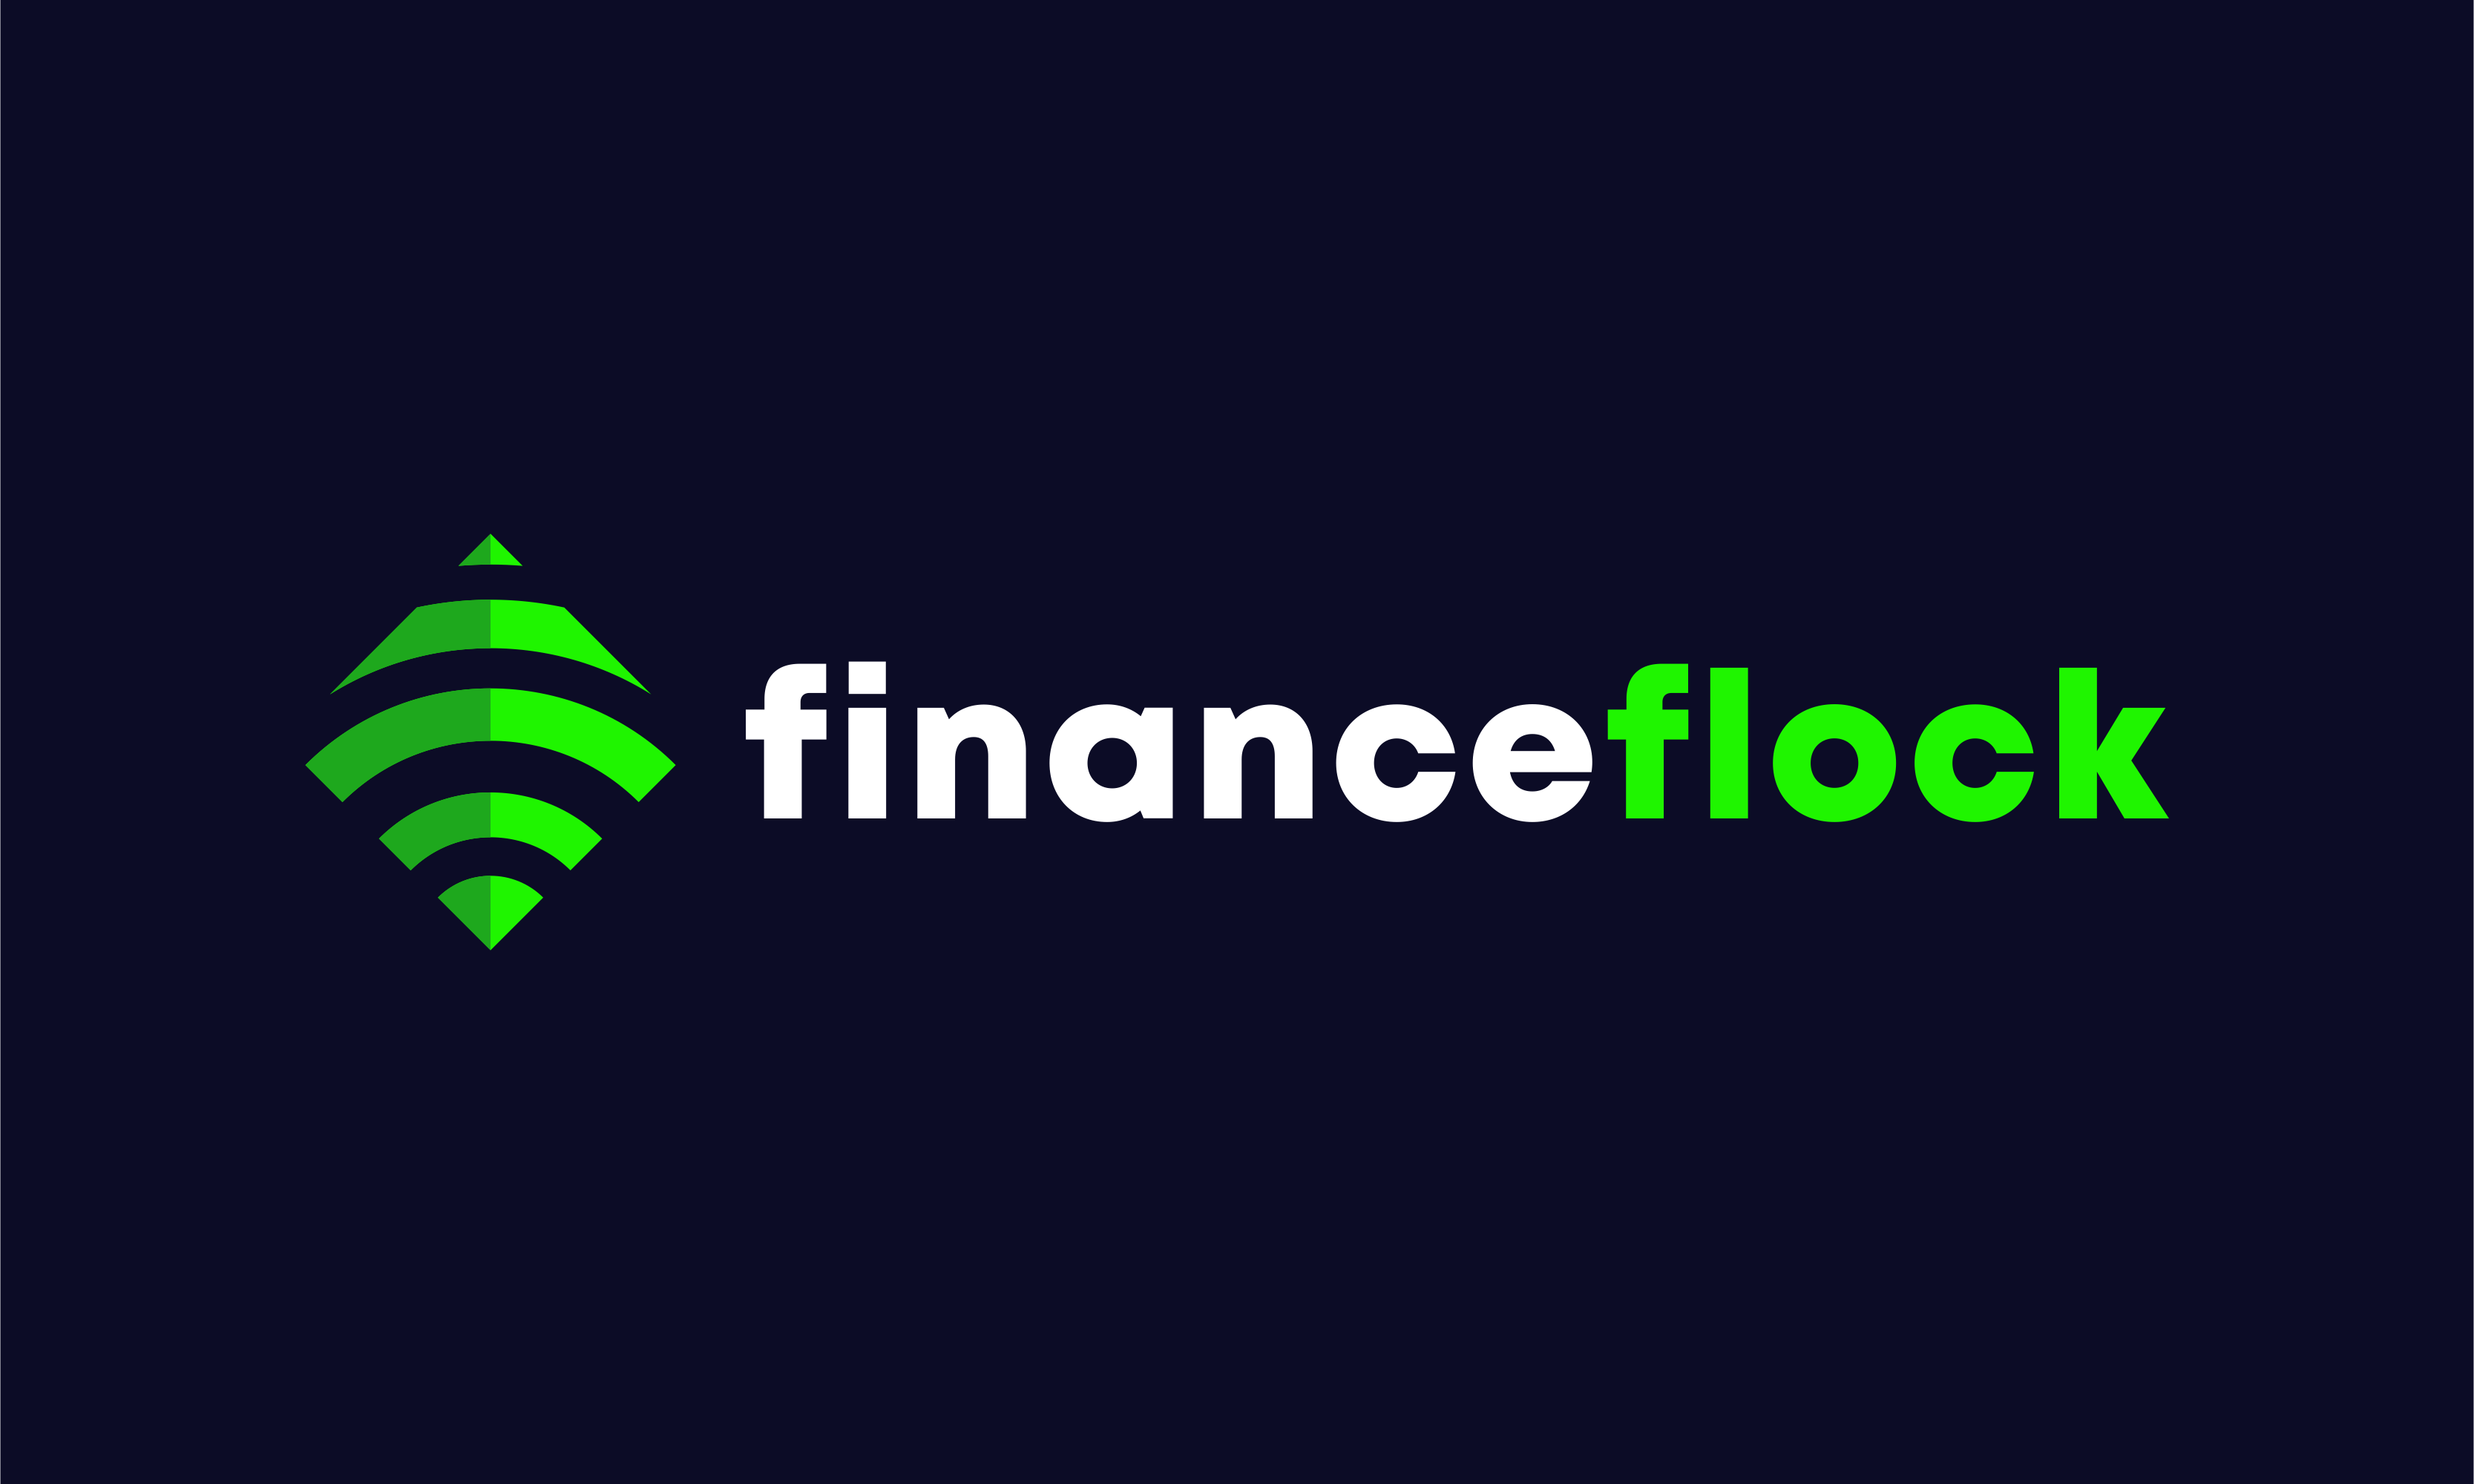 Financeflock